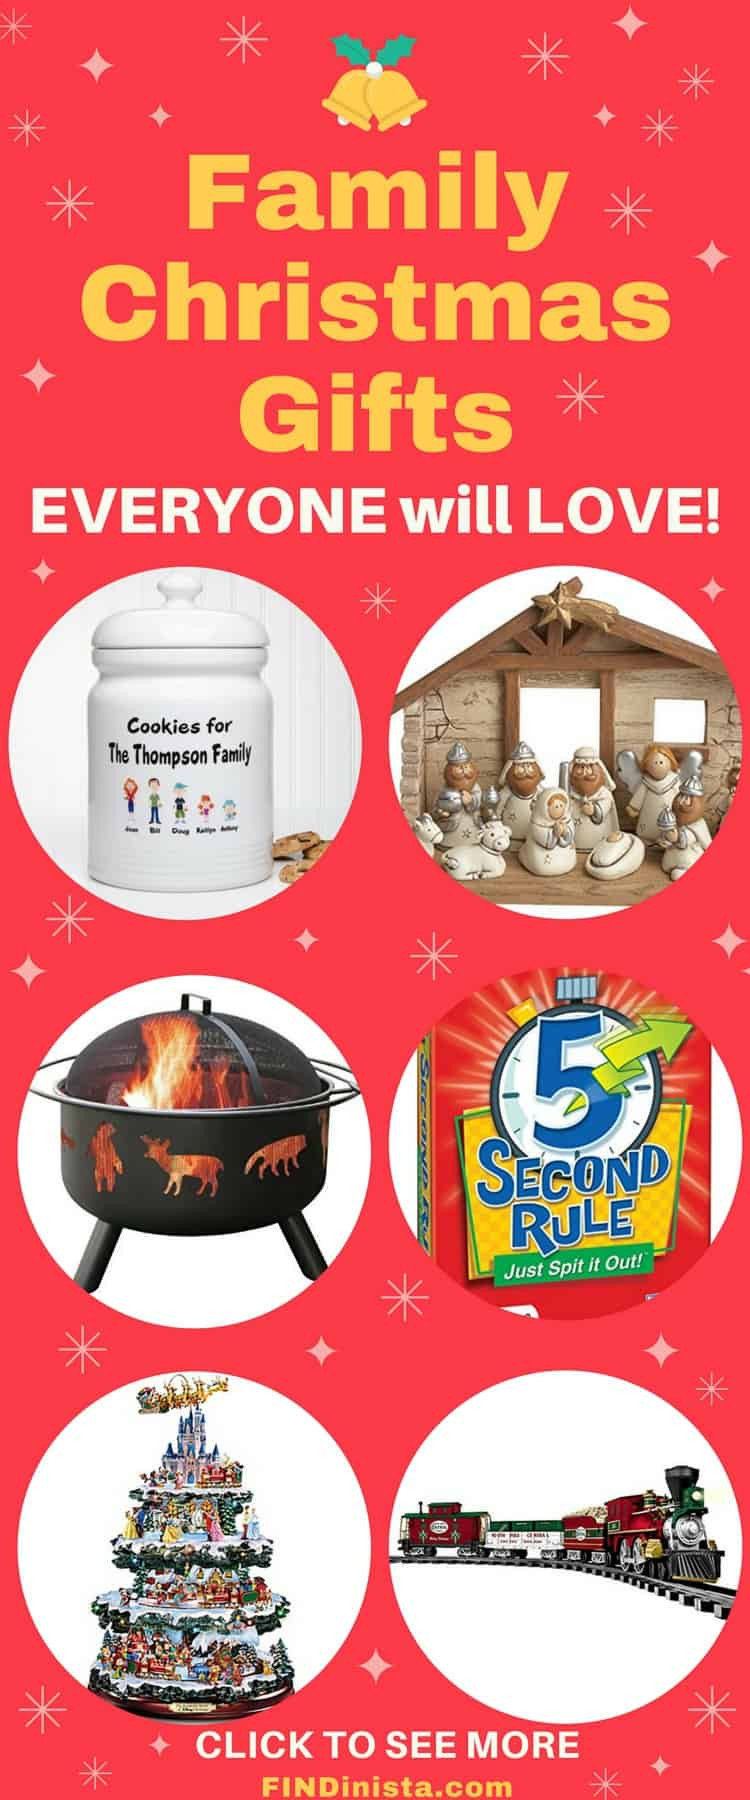 Family Christmas Gift Ideas  Best Family Gift Ideas for Christmas Fun Gifts the Whole